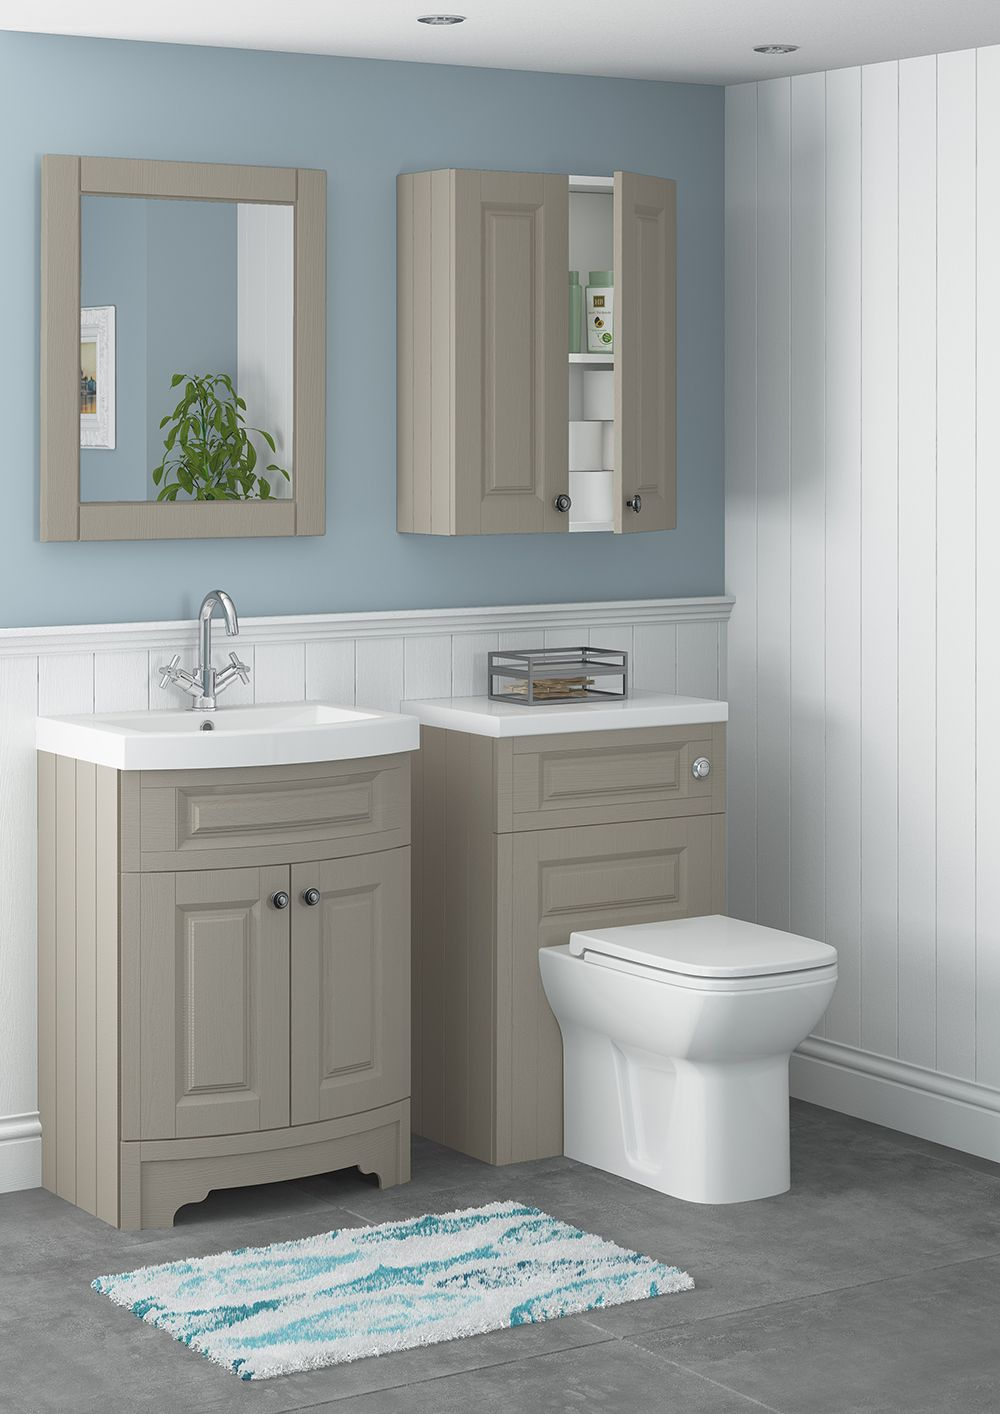 Introducing Atlanta Editions Atlanta Bathrooms Has Extended Its Range With A Deluxe New Brand Of Furniture Bathroom Furniture Bathroom Furniture